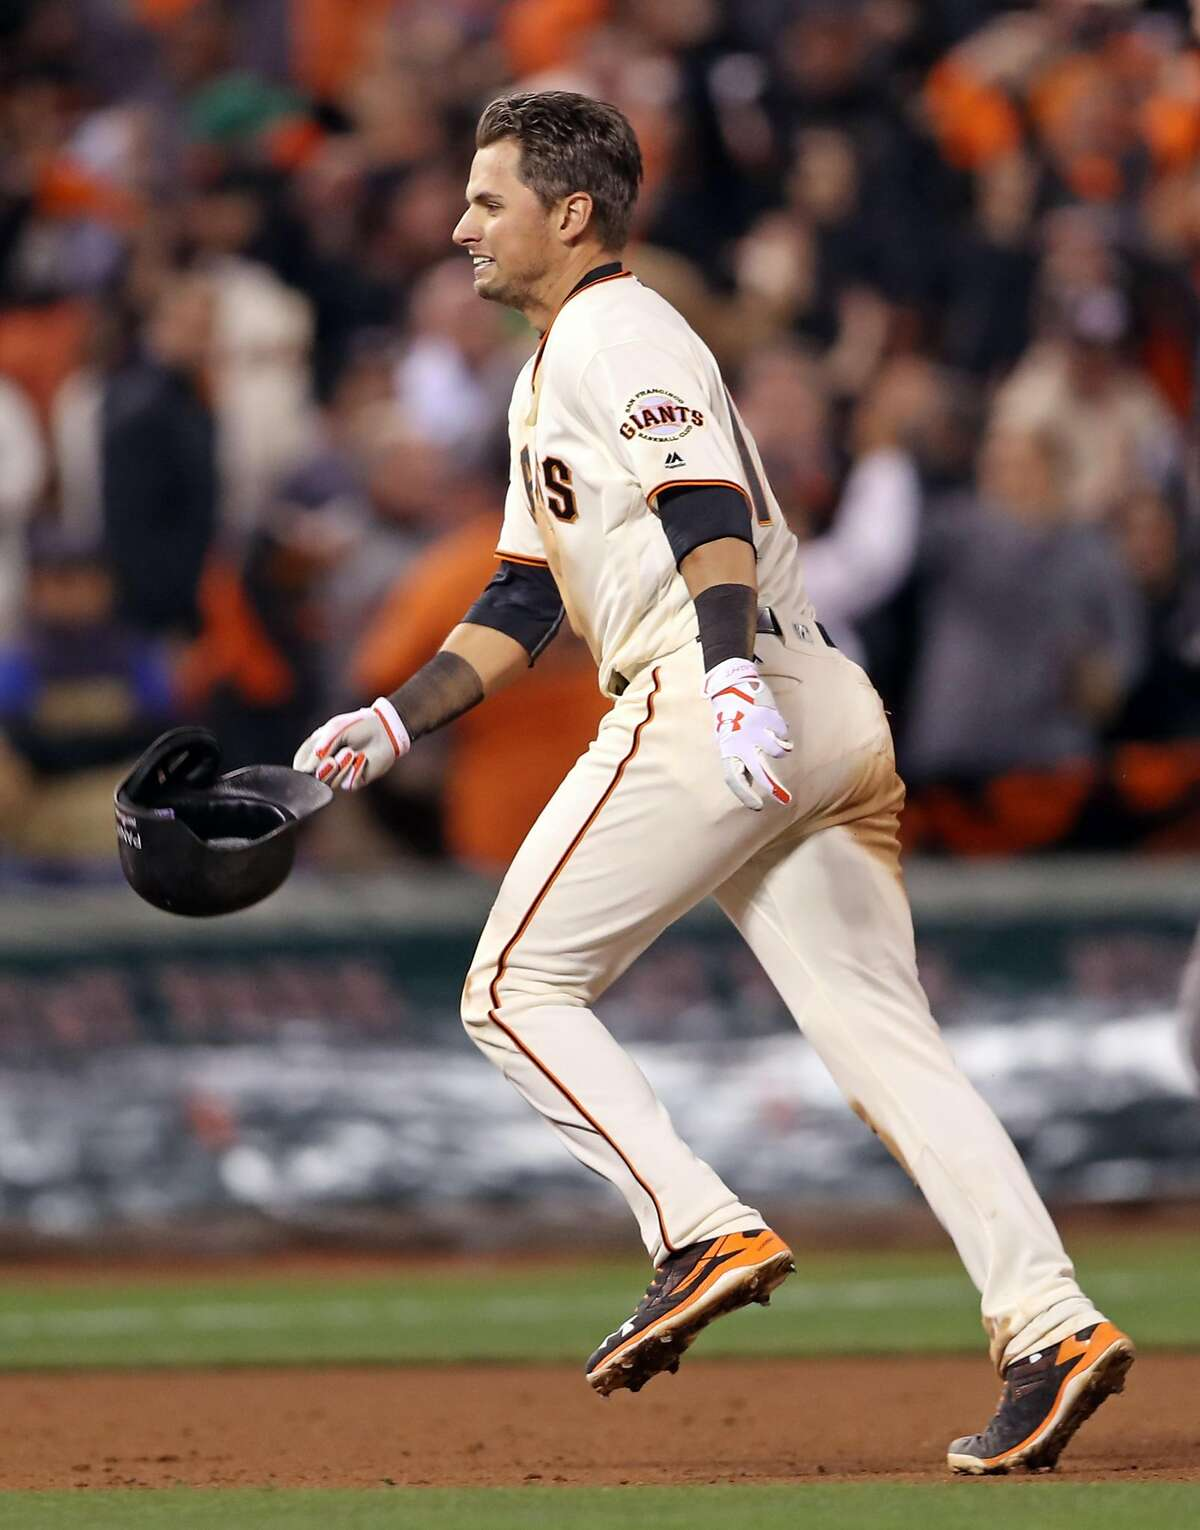 San Francisco Giants' Joe Panik celebrates his game-winning double in 13th inning of 6-5 win over Chicago Cubs during Game 3 of the National League Division Series at AT&T Park in San Francisco, Calif., on Monday, October 10, 2016.